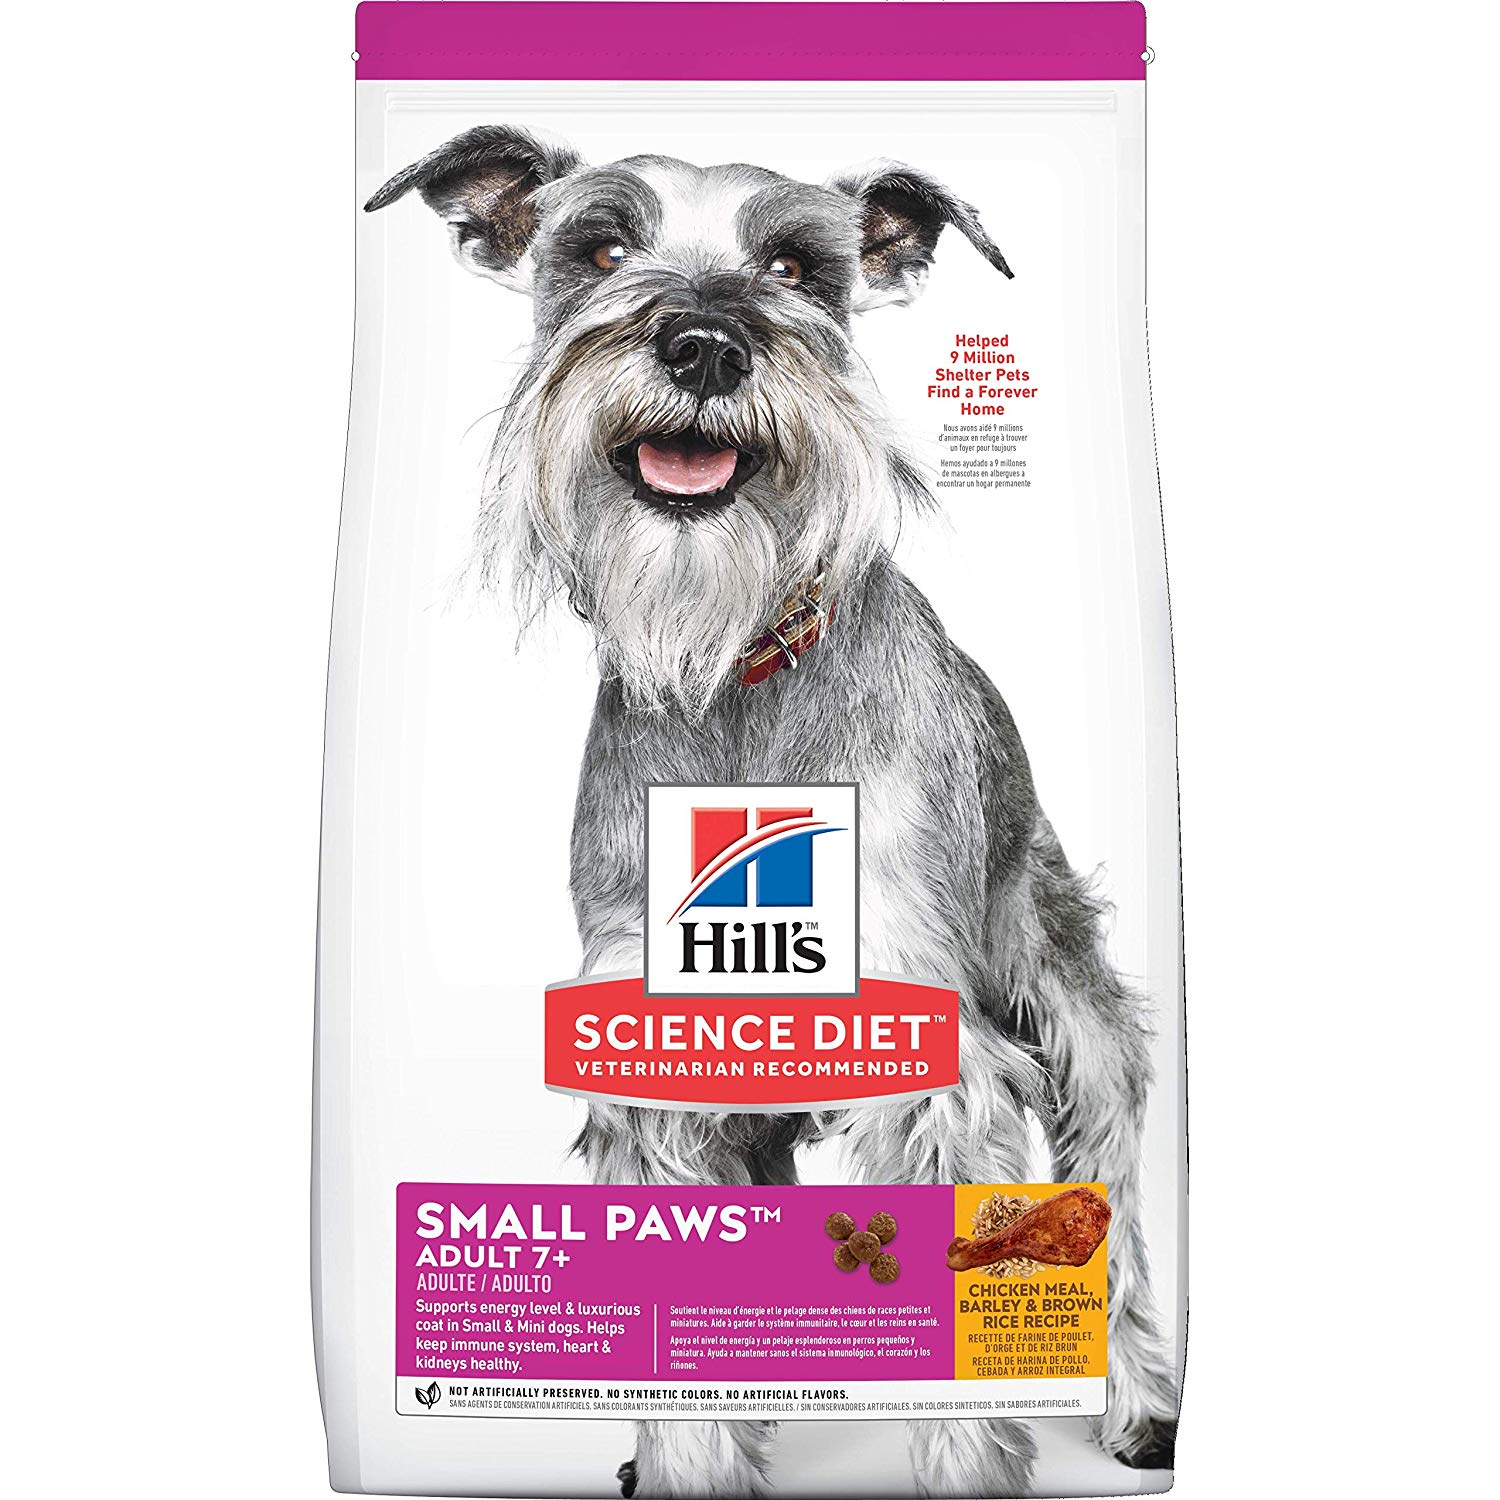 Hill's Science Diet Adult 7+ Small Paws Chicken Meal, Barley & Brown Rice Recipe Dry Dog Food, 15.5-lbs